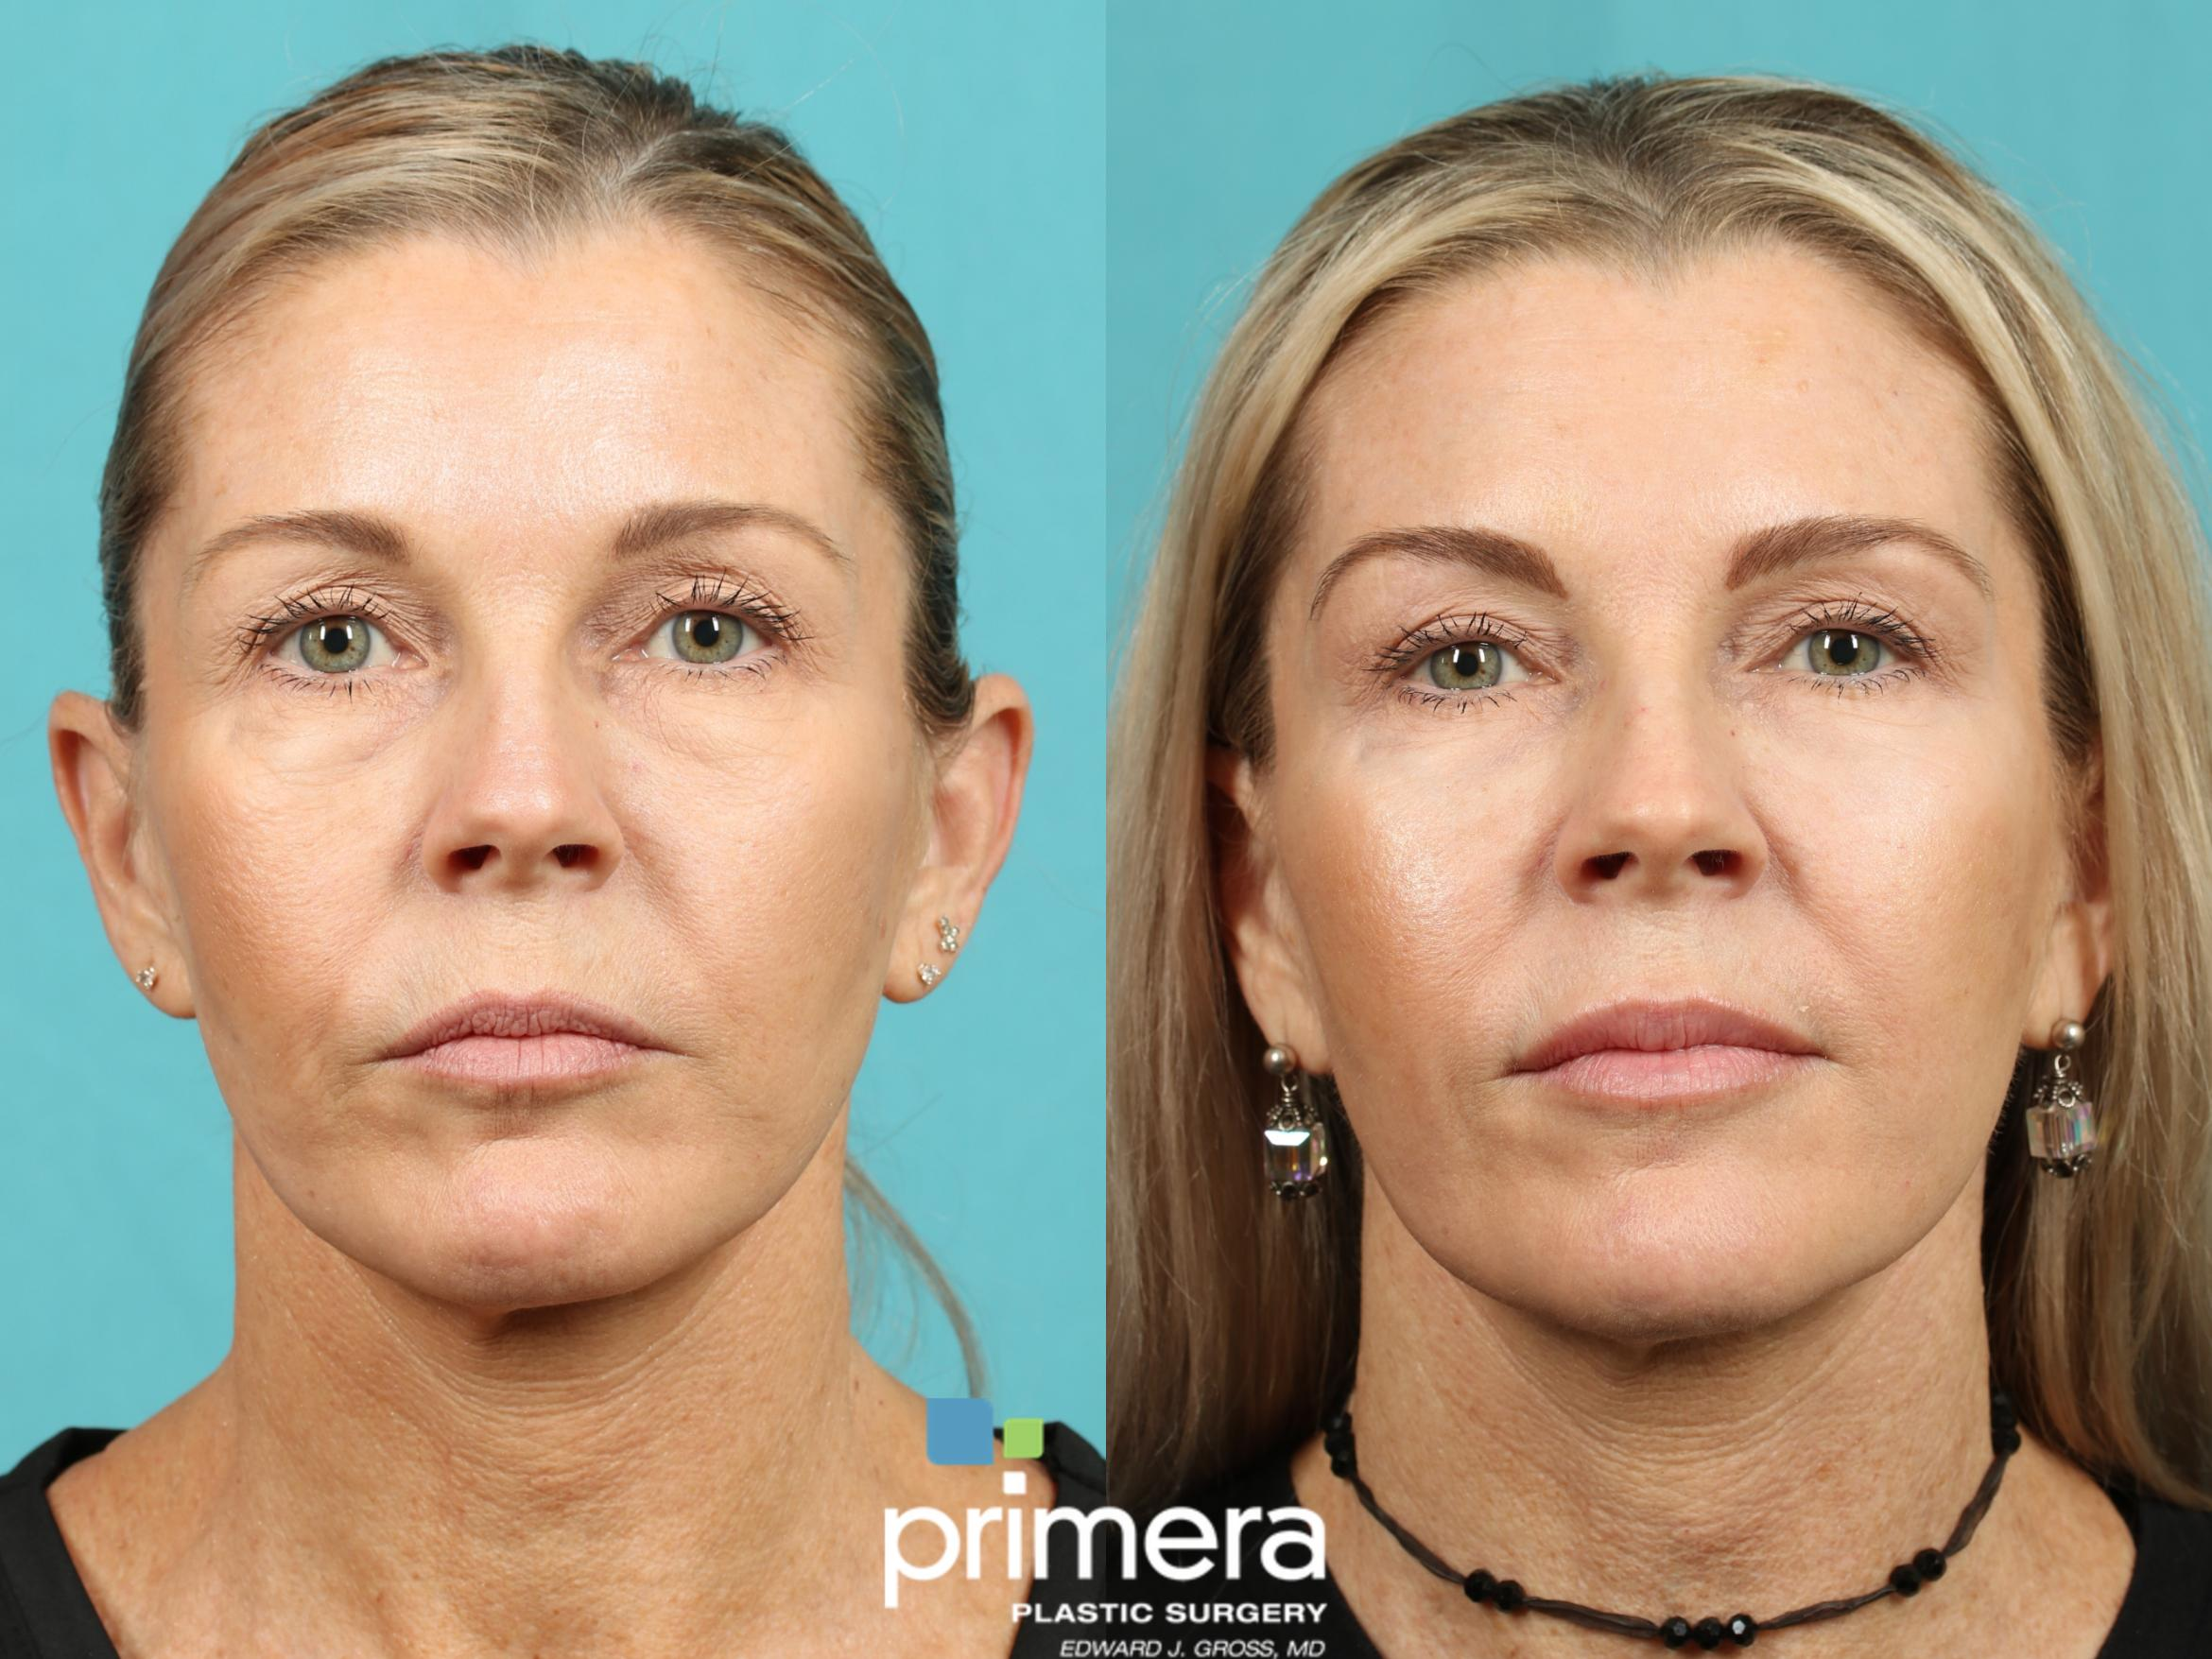 BOTOX® Cosmetic Before & After Photo | Orlando, Florida | Primera Plastic Surgery